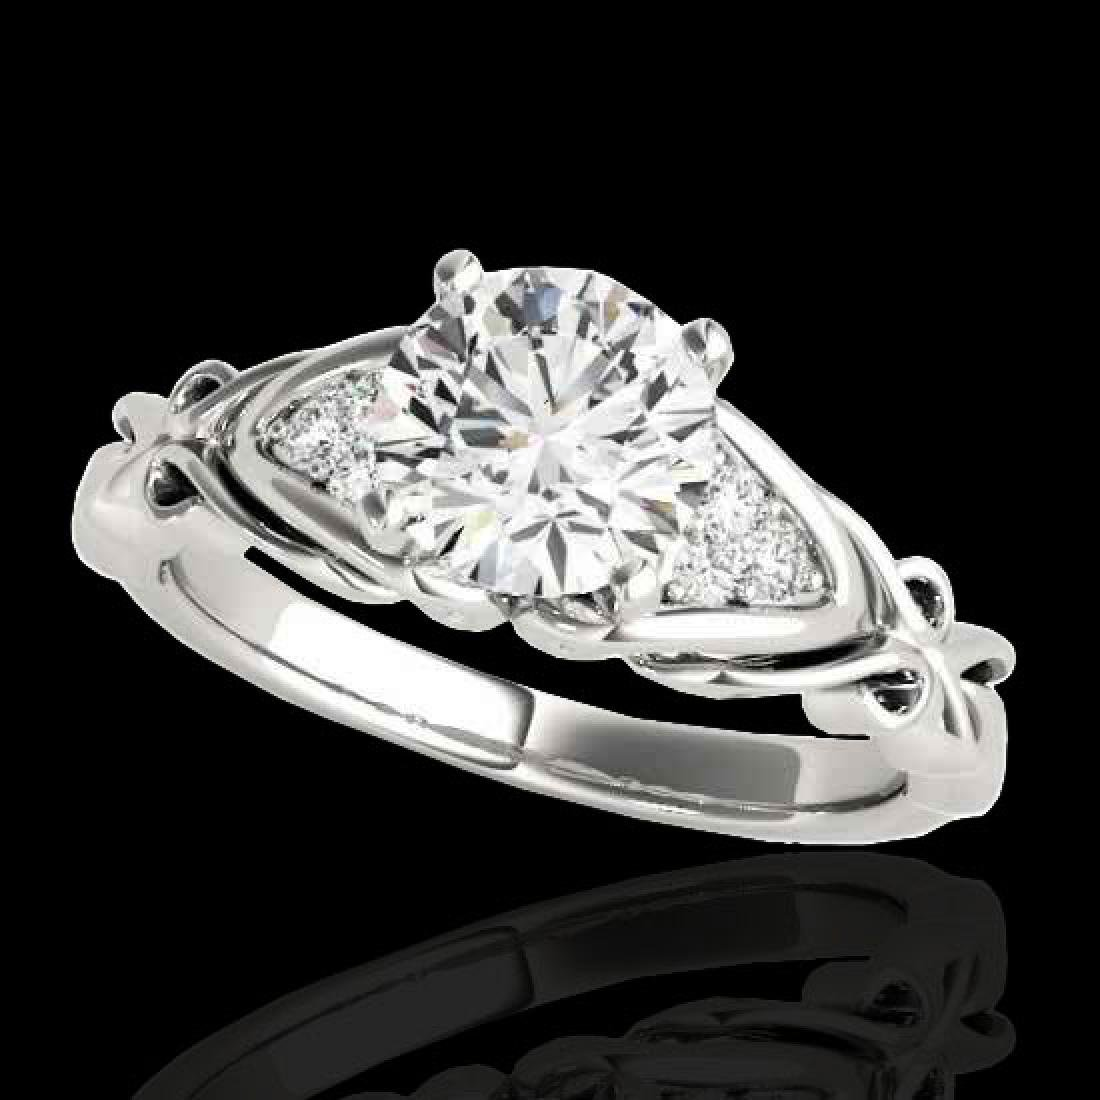 1.1 CTW H-SI/I Certified Diamond Solitaire Ring 10K